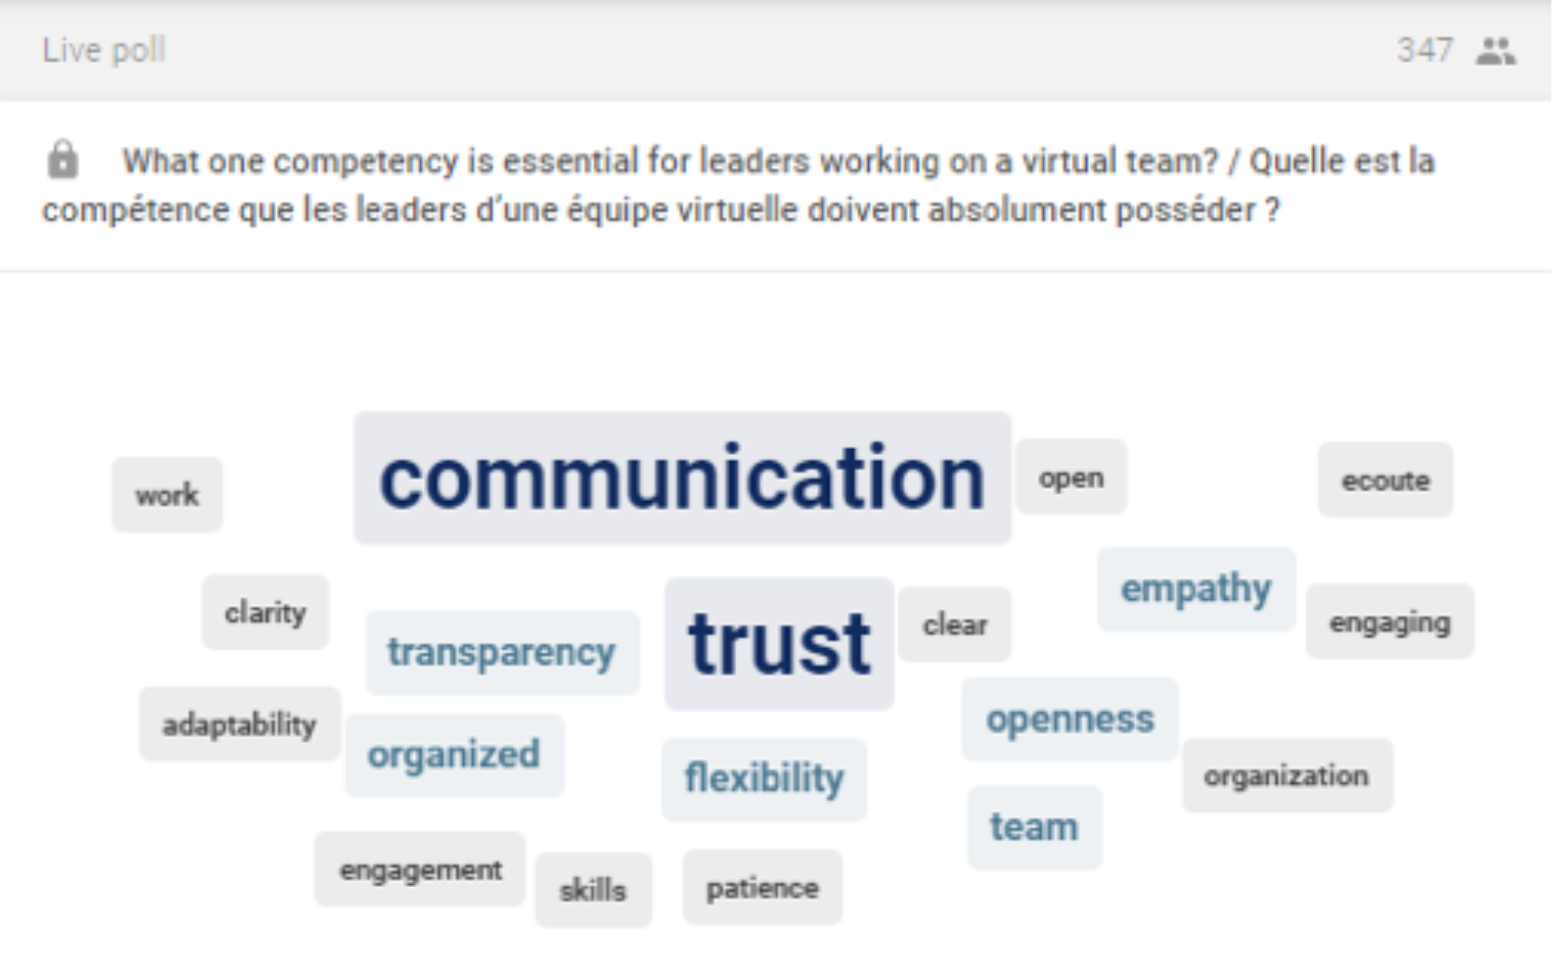 What one competency is essential for leaders working on a virtual team?/ Quelle est la compétence que les leaders d'une équipe virtuelle doivent absolument posséder? (Responses in order of popularity) Communication, trust, transparency, organized, flexibility, empathy, openness, team, organization, work, clarity, adaptability, engagement, skills, patience, ecoute, open, clear.